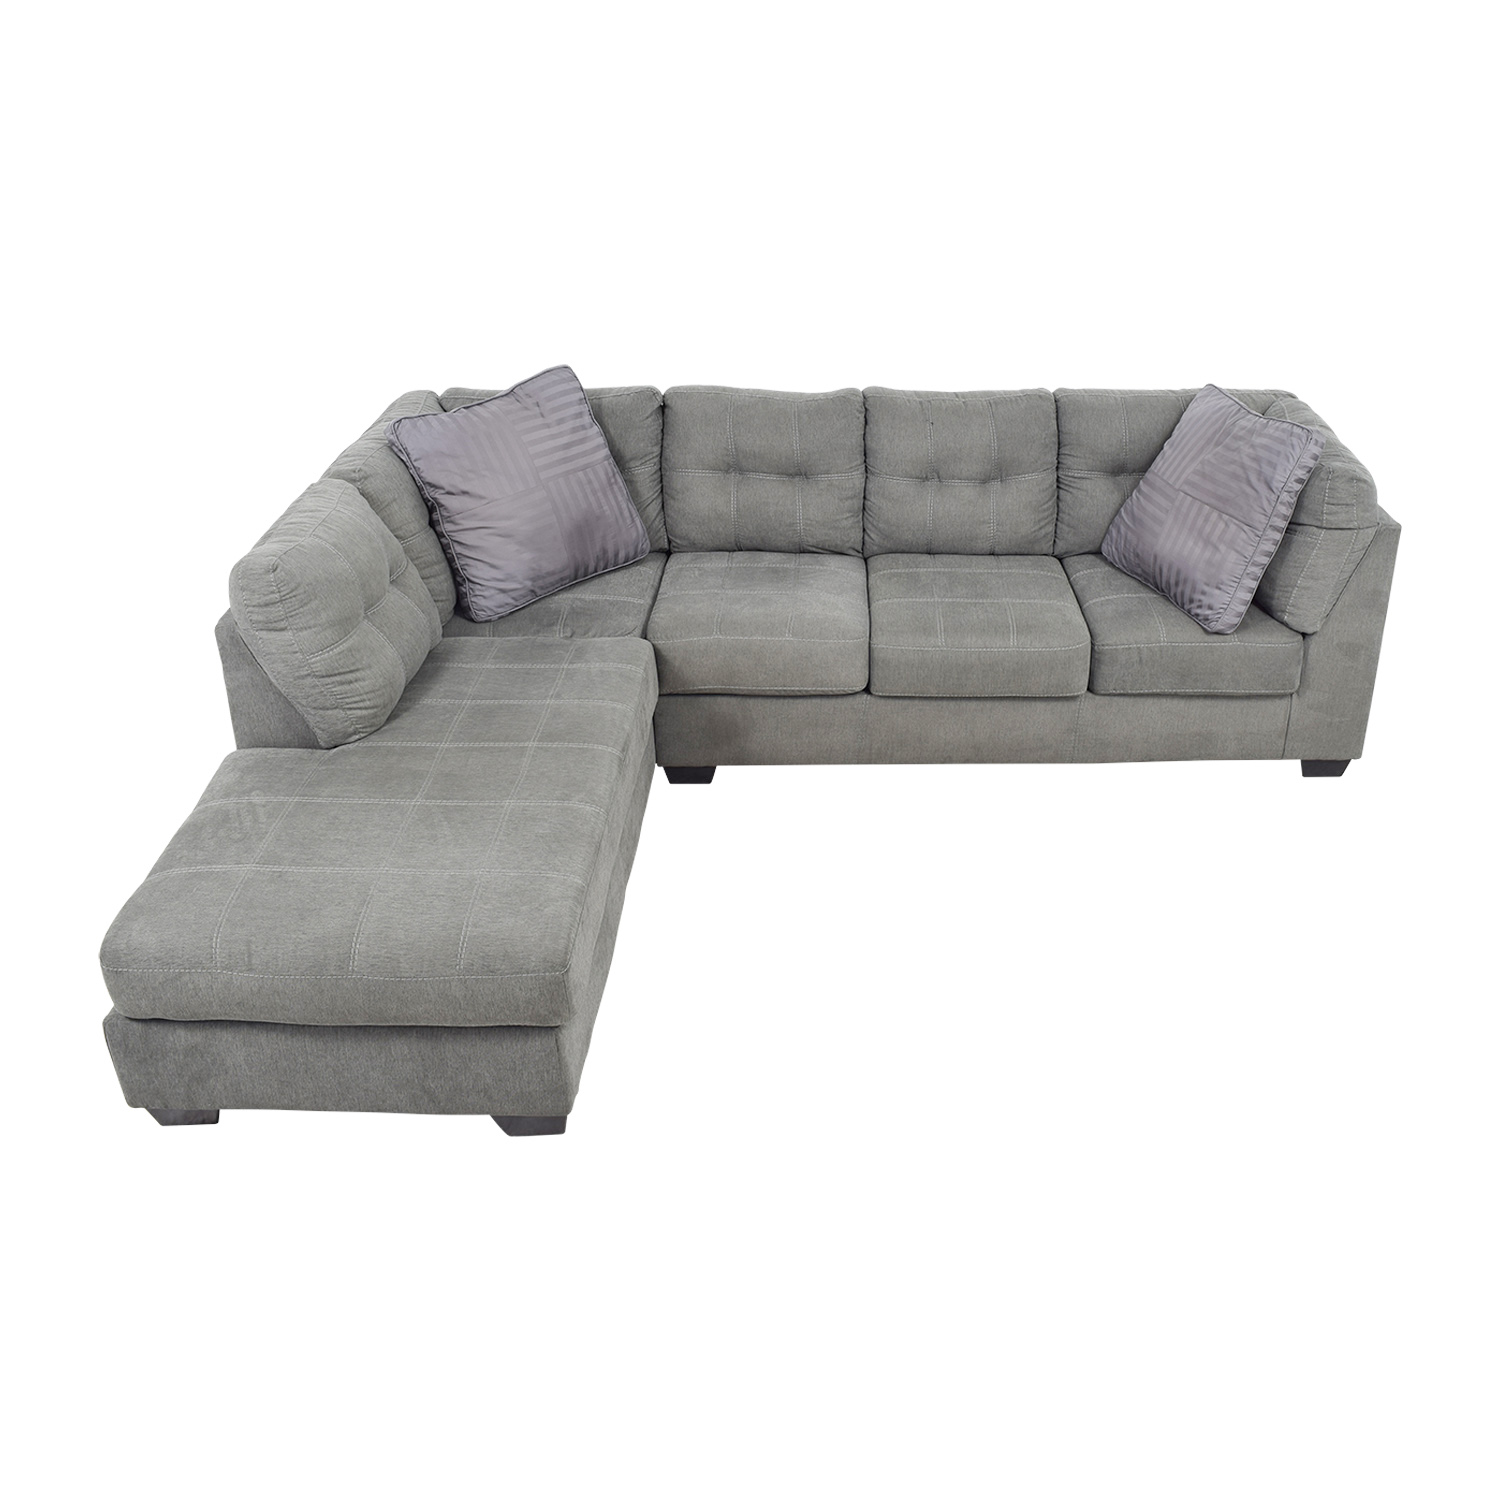 ... buy Jennifer Convertibles Arthur Grey Left Arm Chaise Sectional Jennifer Convertibles Sectionals ...  sc 1 st  Furnishare : jennifer convertibles chaise - Sectionals, Sofas & Couches